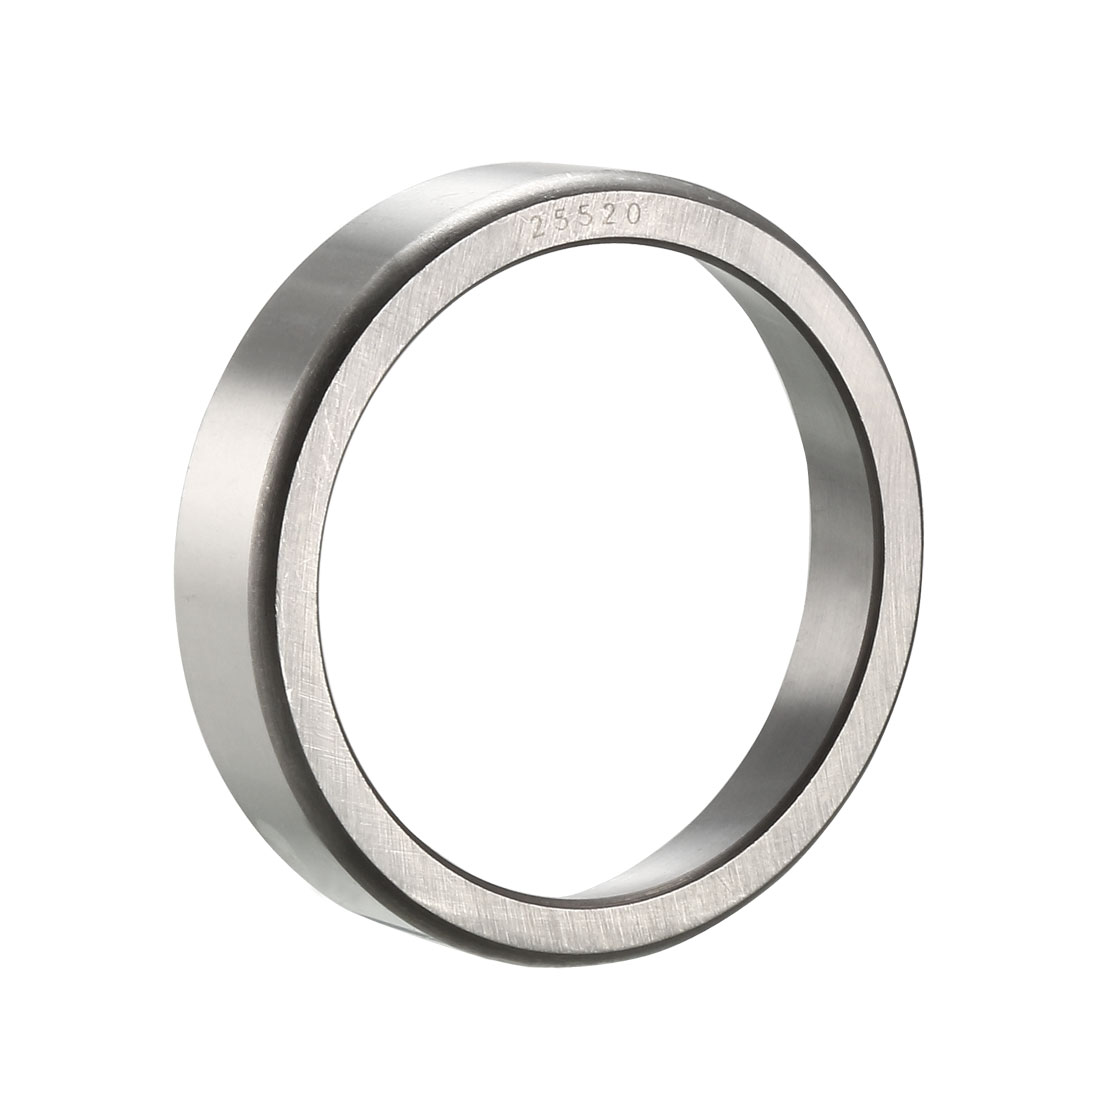 """25520 Tapered Roller Bearing Outer Race Cup 3.265"""" Outside Diameter, 0.75"""" Width"""